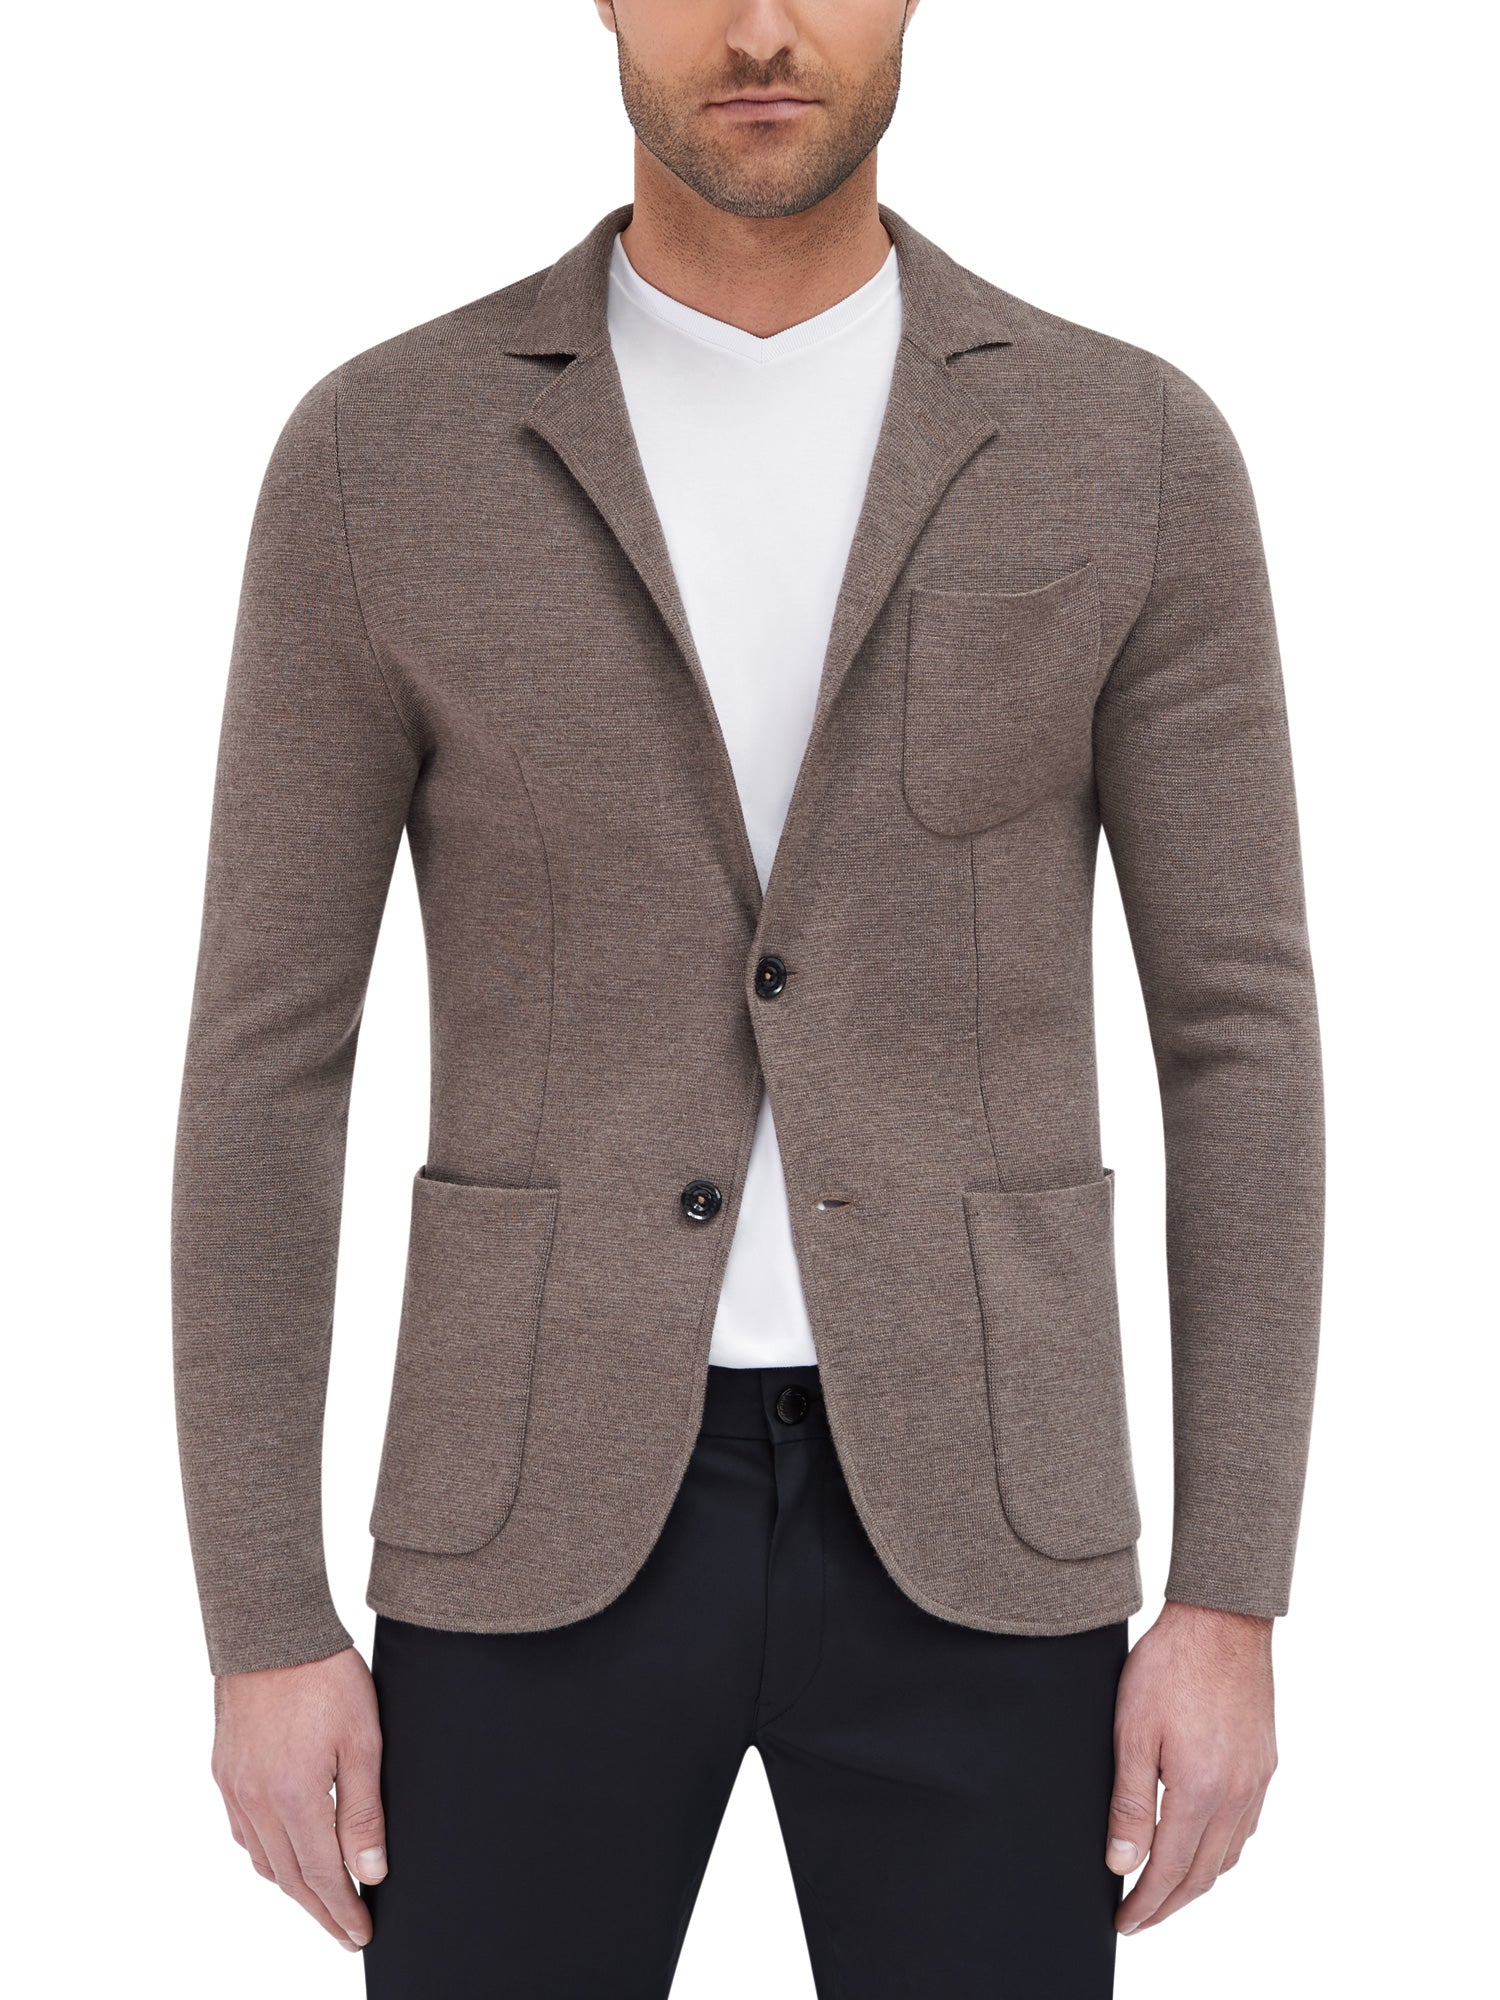 Hull Knitted Blazer - Brown